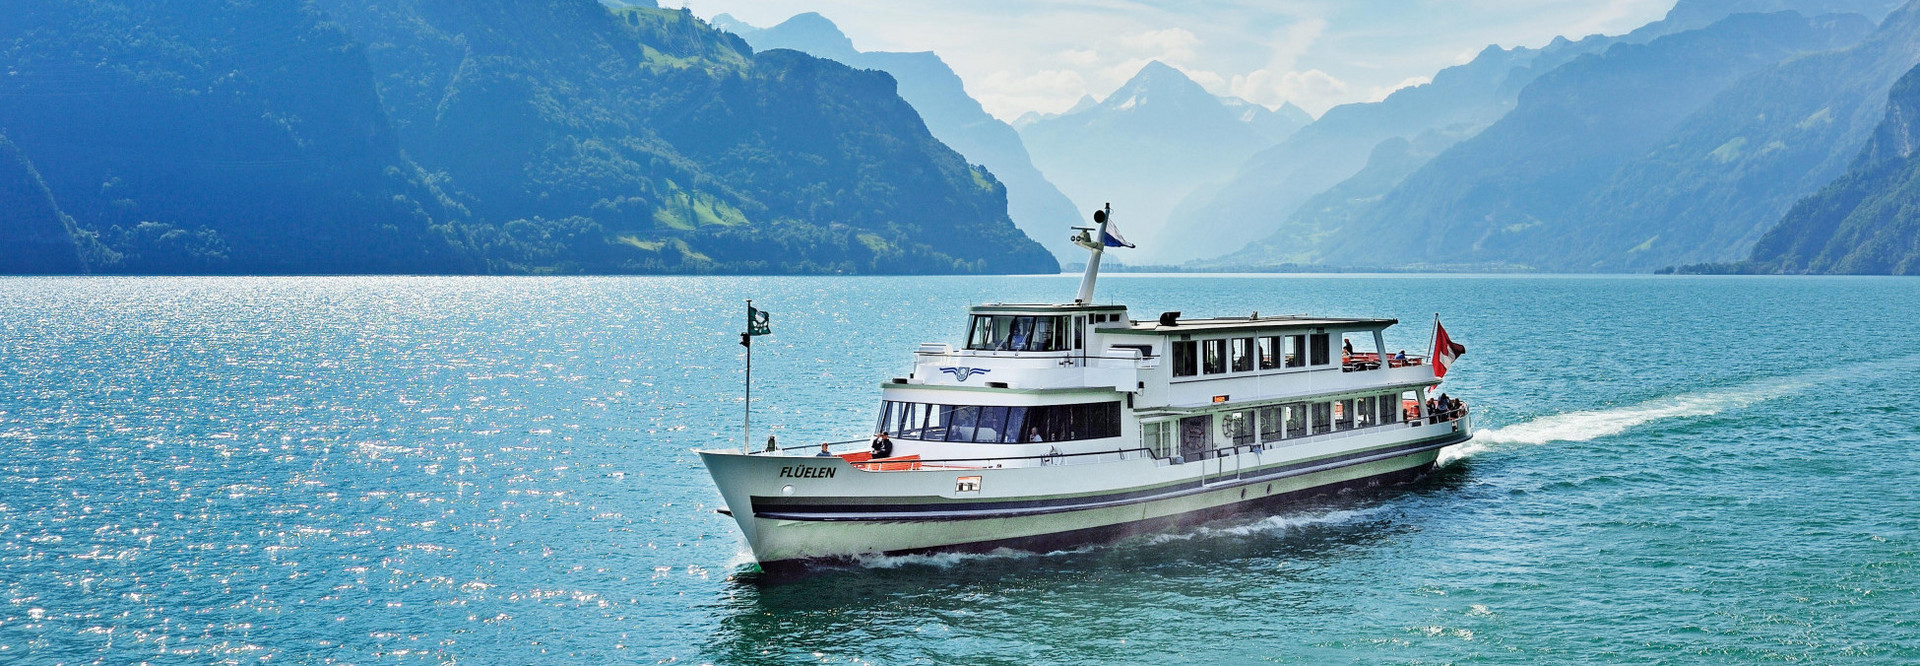 The motor vessel Flüelen sails from Uri to Lucerne on a beautiful summer day.